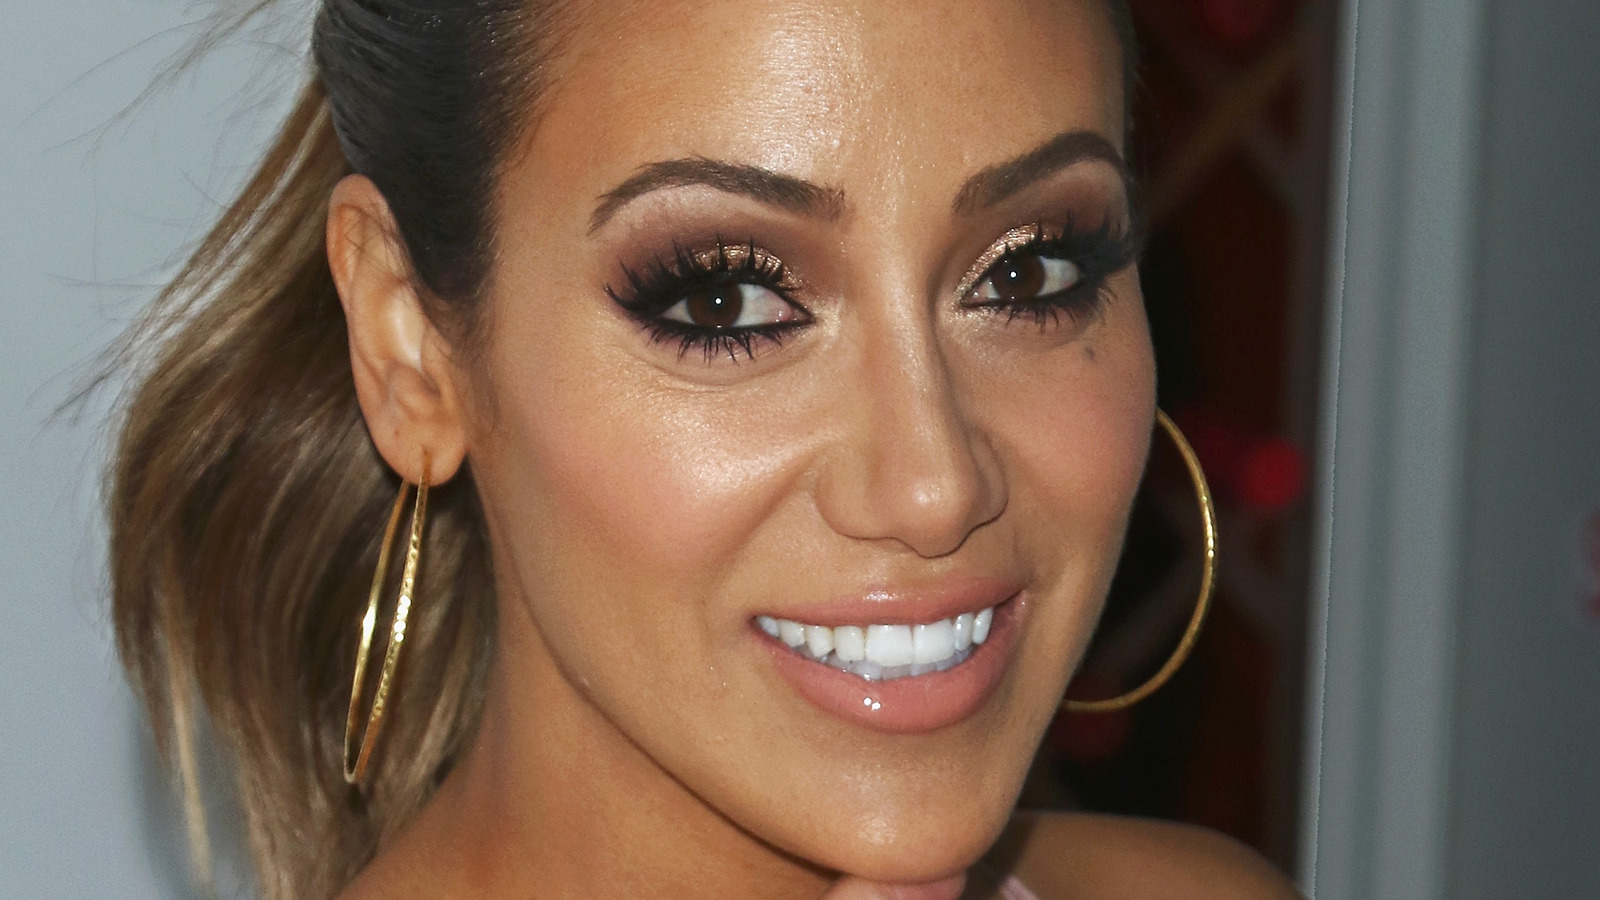 What's Really Going On With Melissa Gorga's Marriage? The Real Housewives of New Jersey